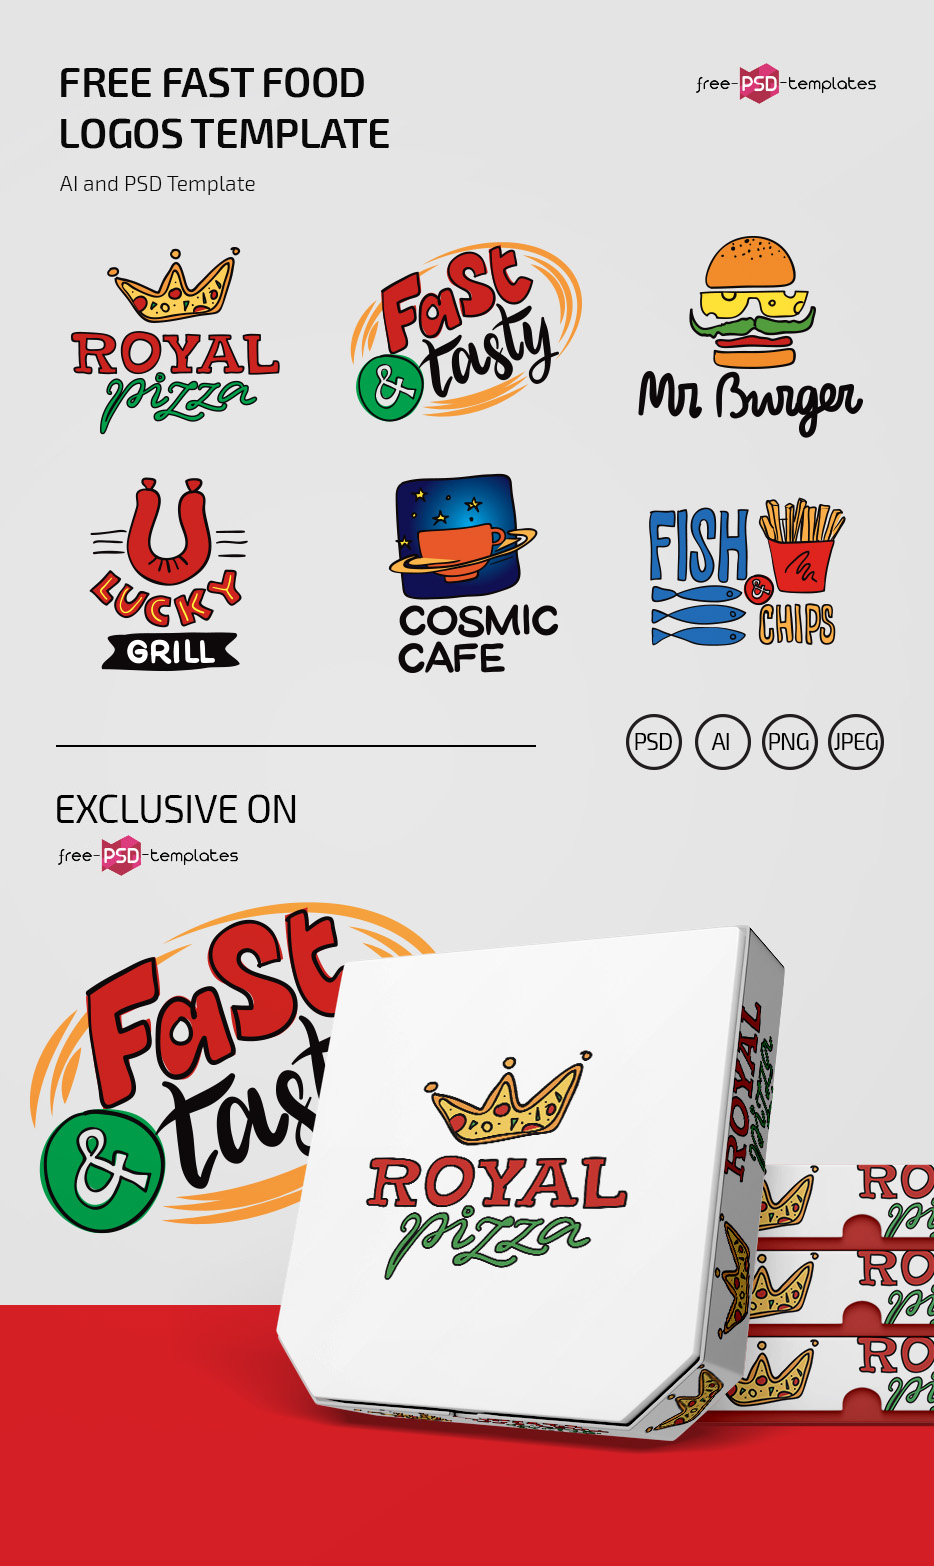 Free Fast Food Logos Template Free Psd Templates